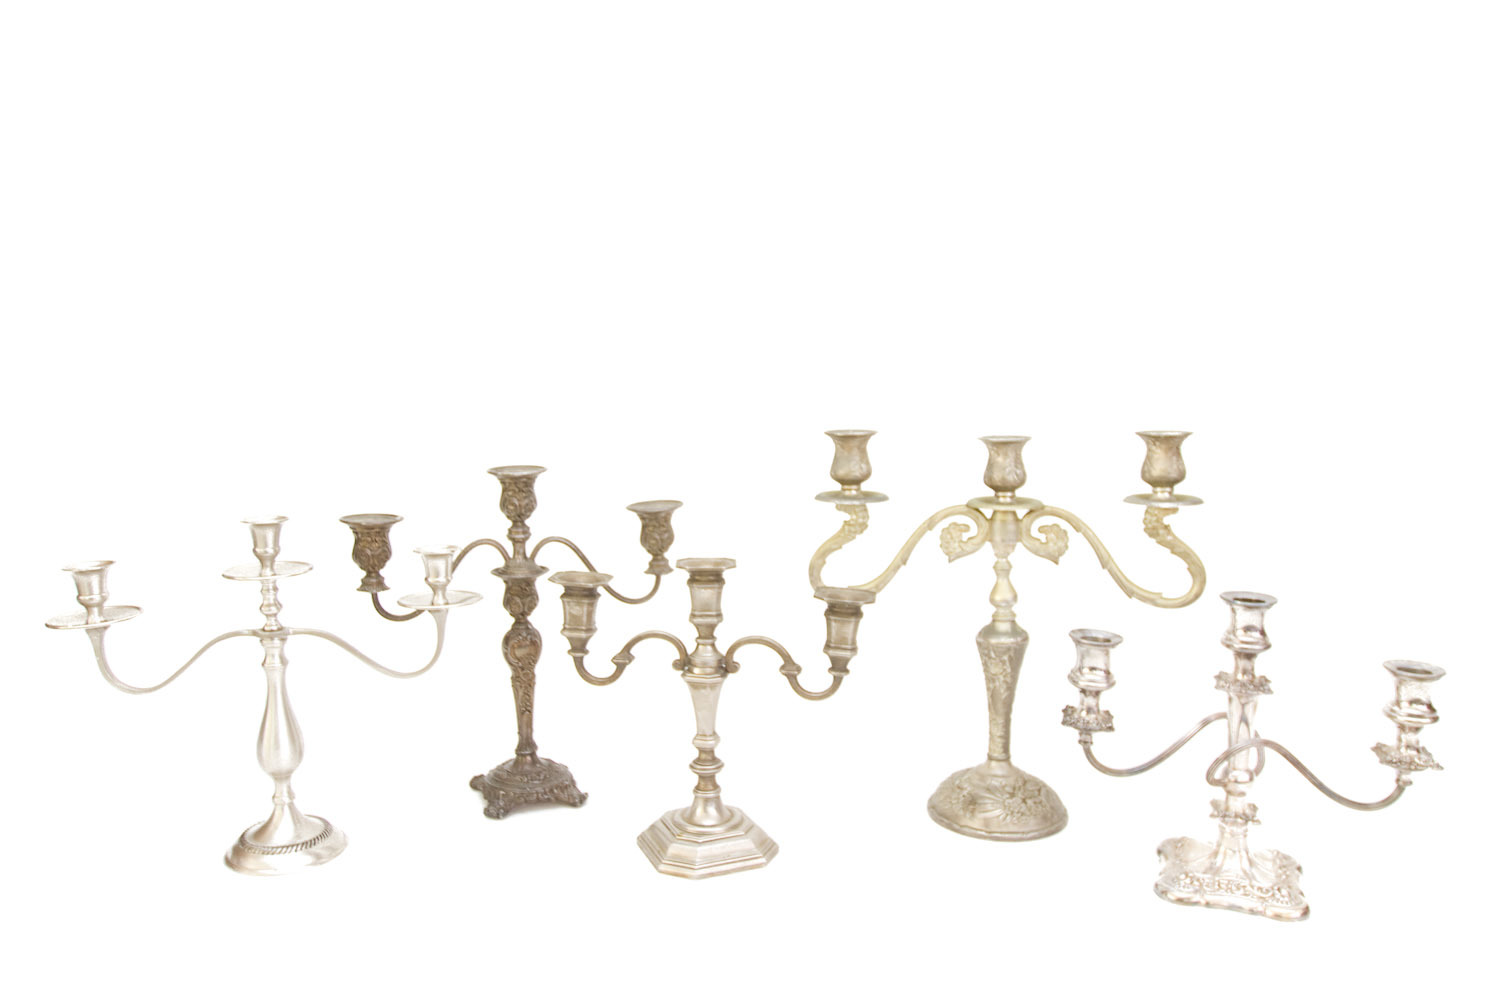 (TA-079.4) SILVER + PEWTER CANDELABRA COLLECTION